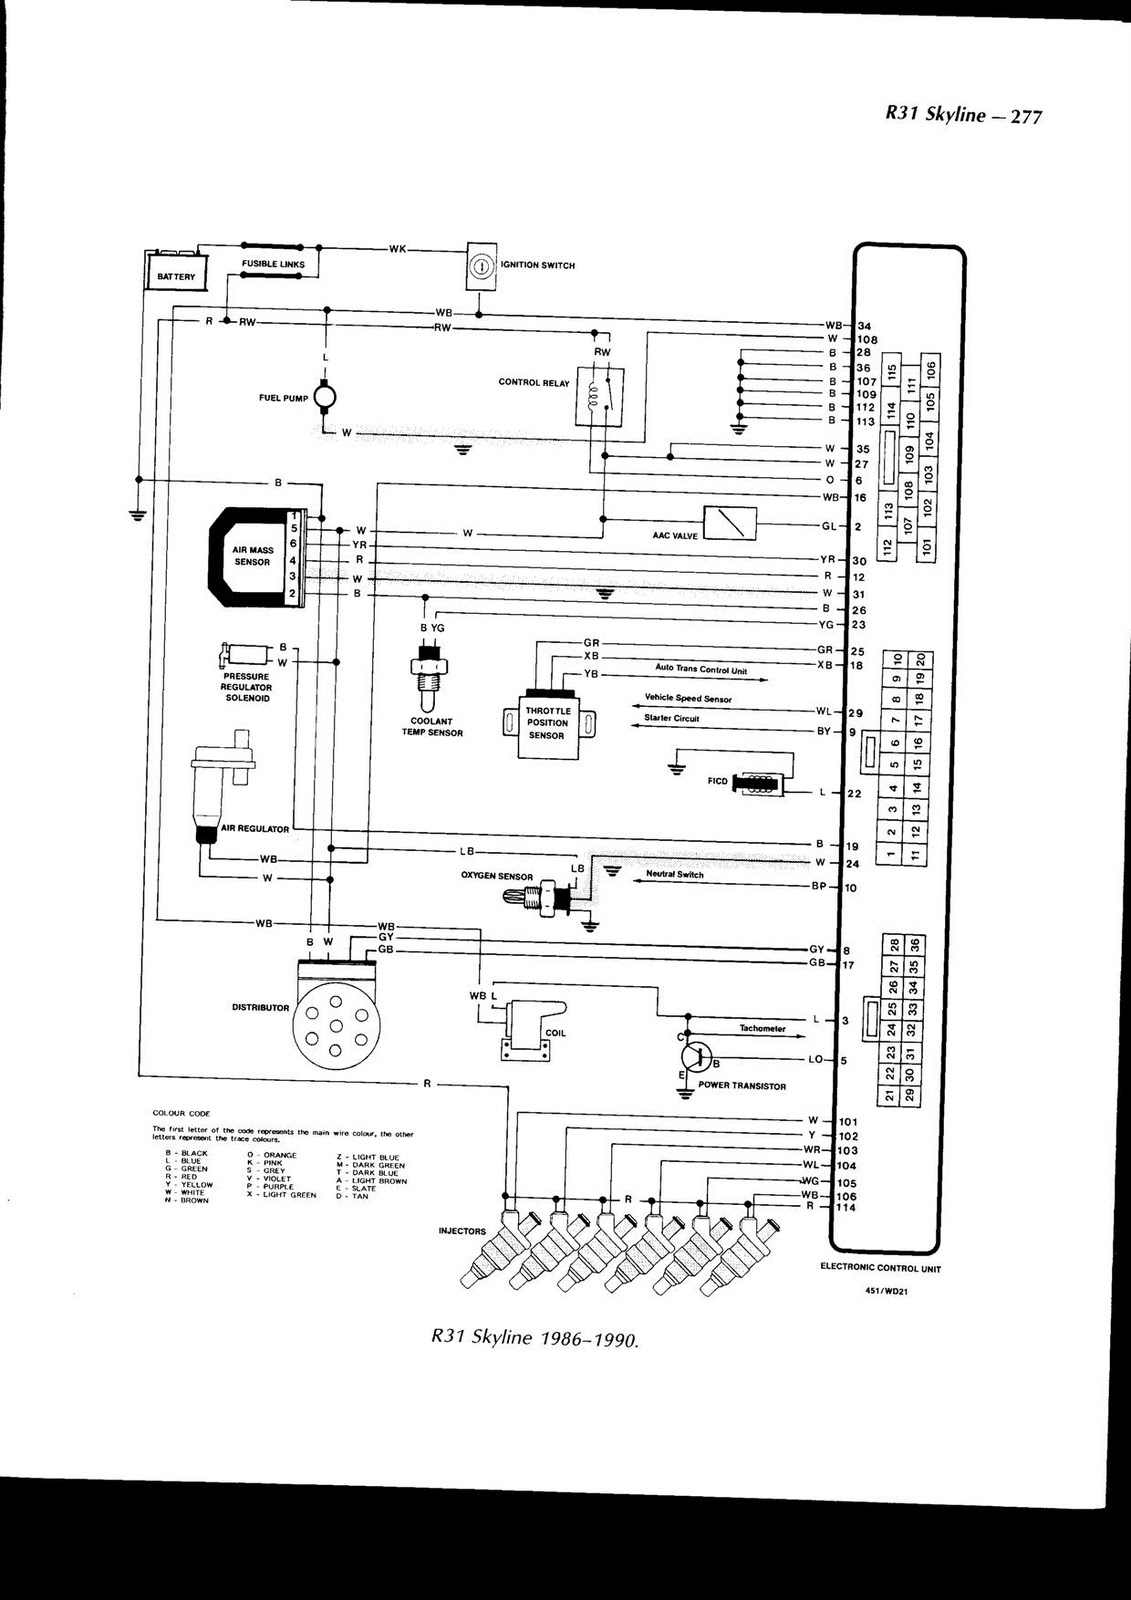 r33 radio wiring diagram ford sierra rb30 diagrams 280zx project